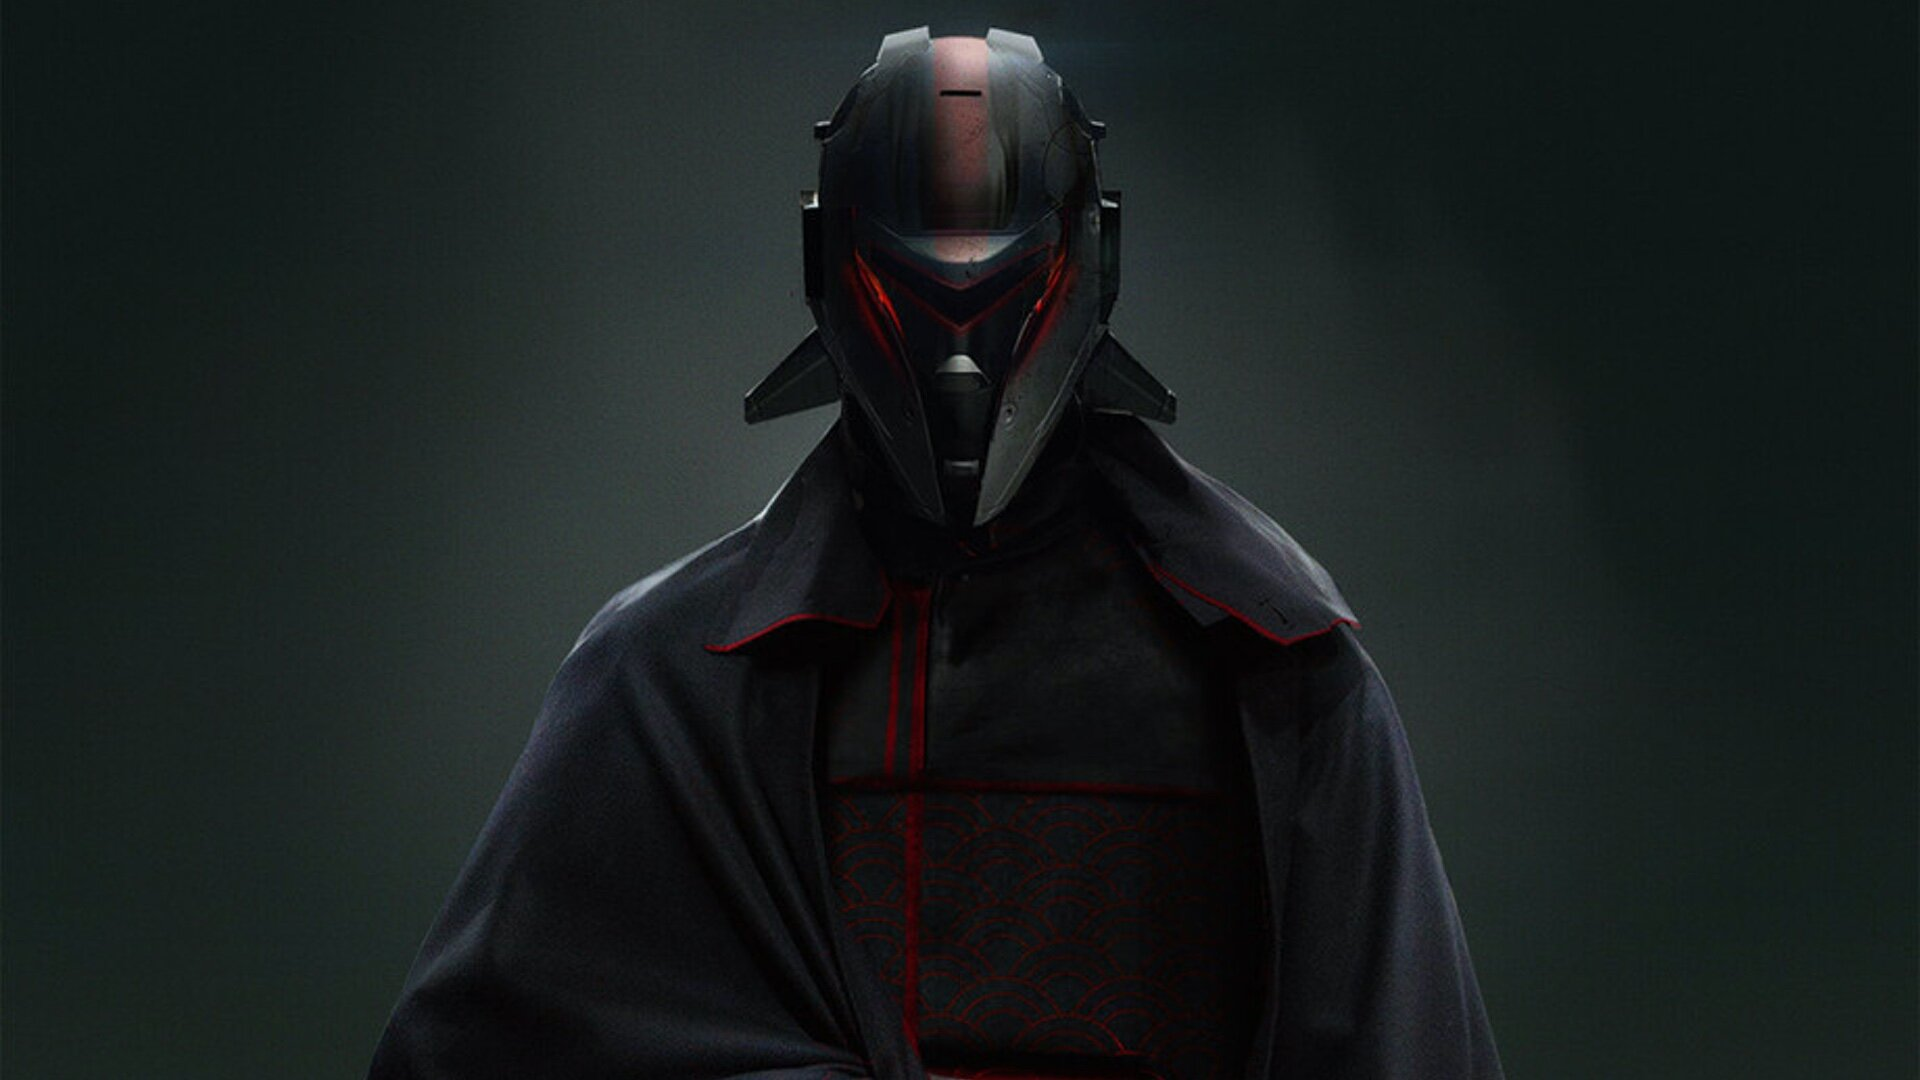 star-wars-fan-art-shows-off-cool-new-sith-and-bounty-hunter-character-designs-social.jpg